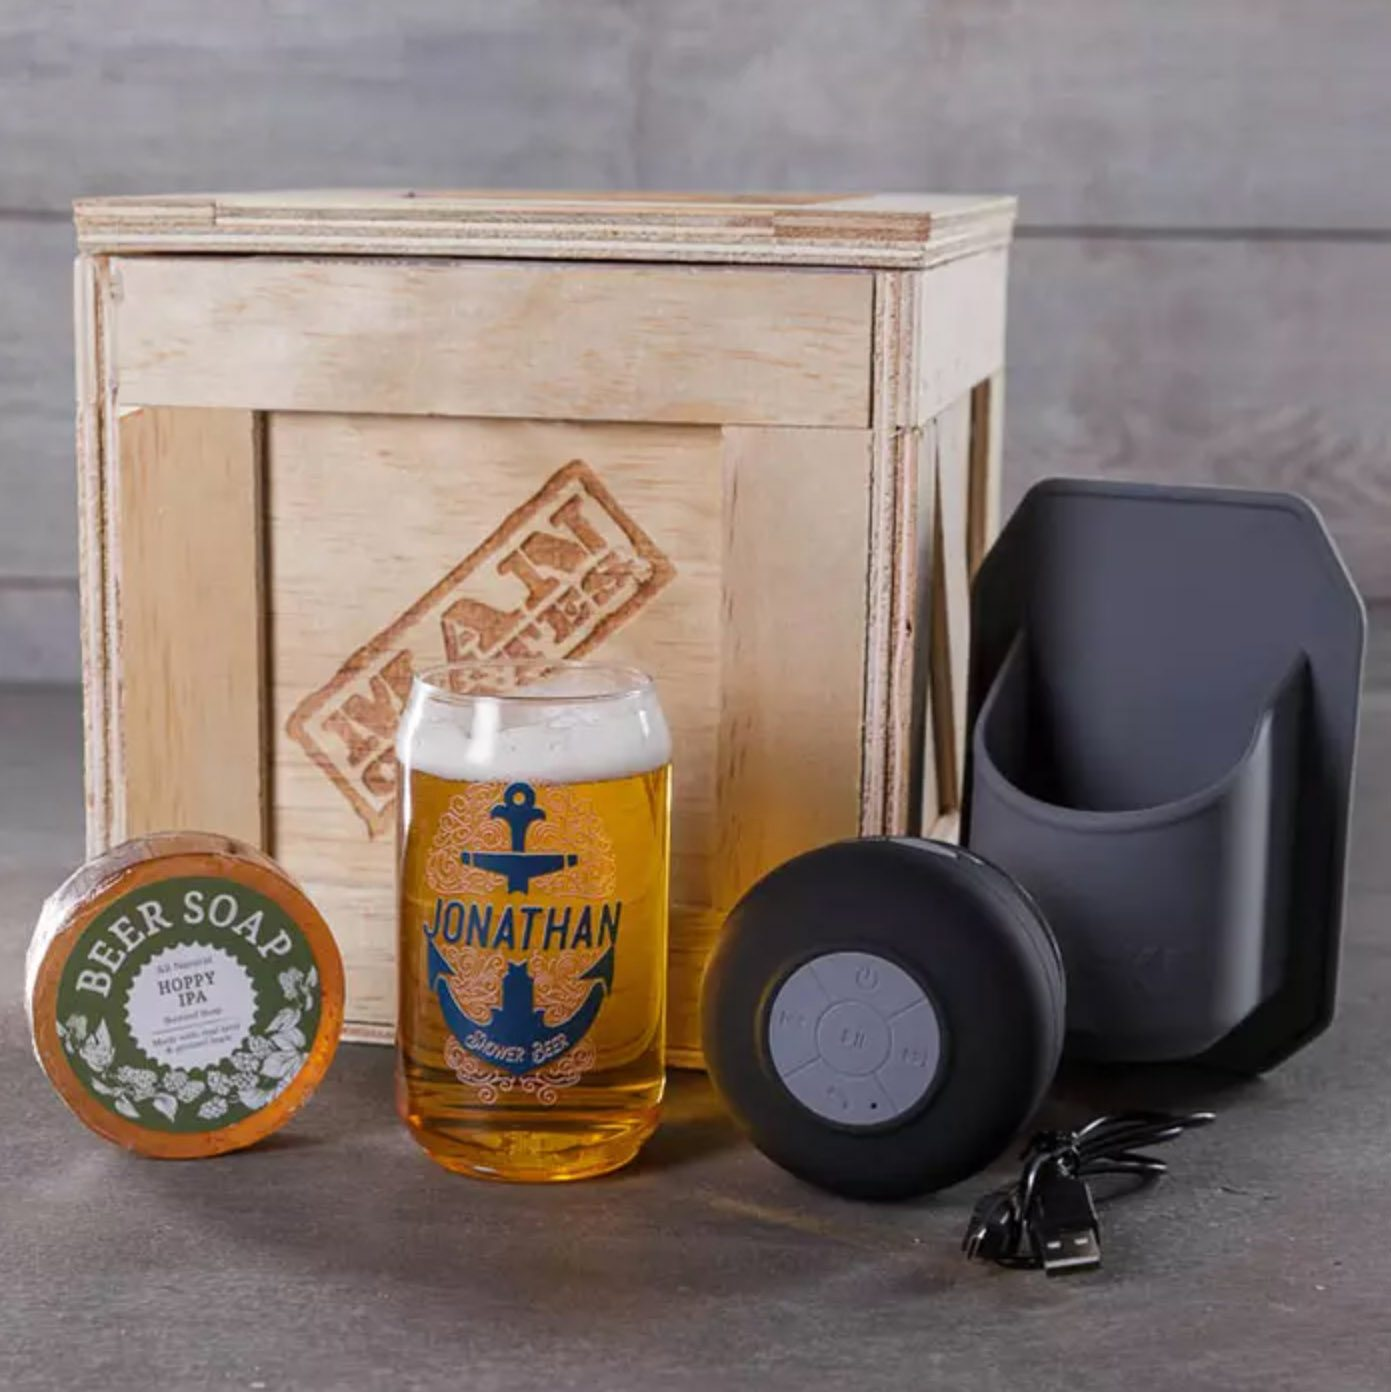 Man Crates Personalized Shower Beer Crate